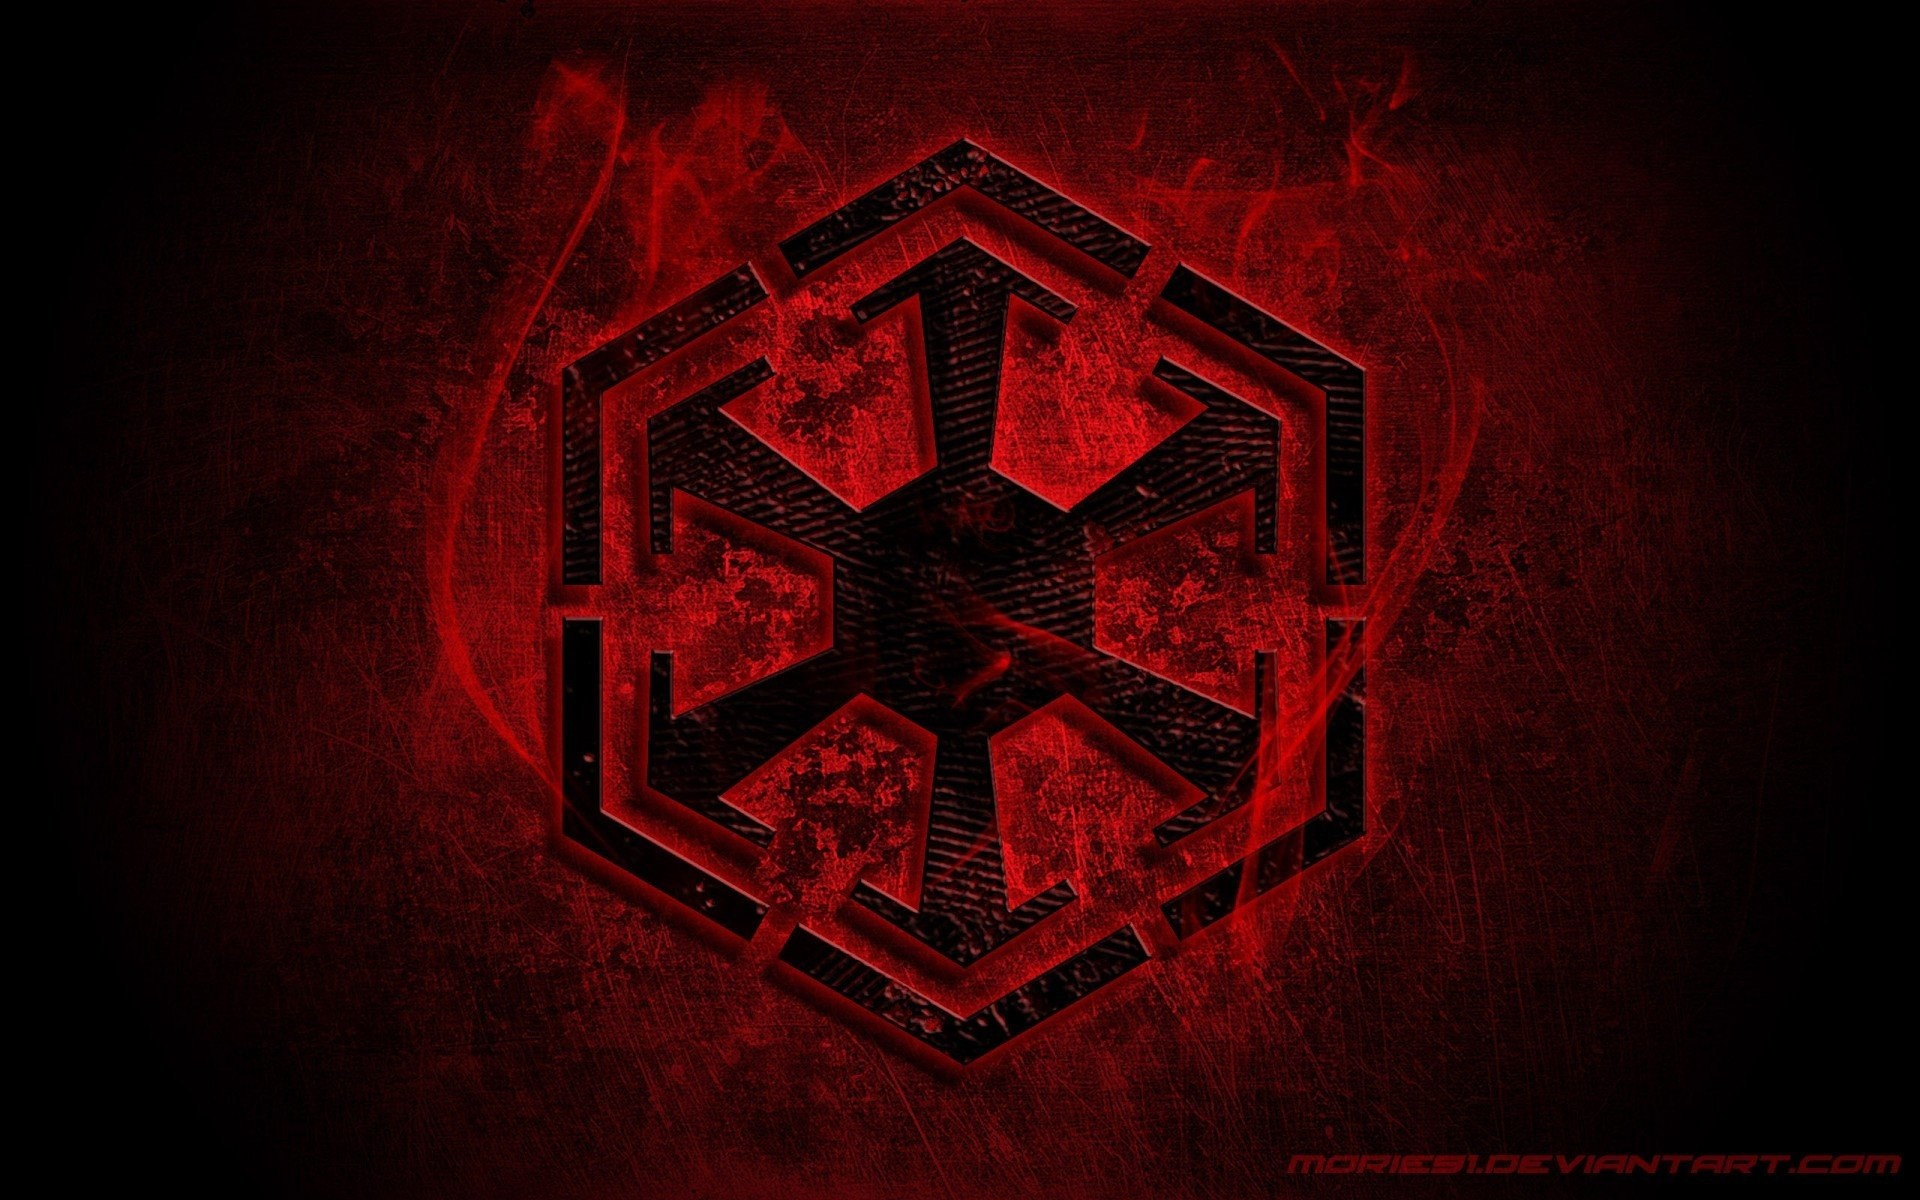 Star-wars-the-old-republic-Sith-logo wallpaper | | 590331 |  WallpaperUP